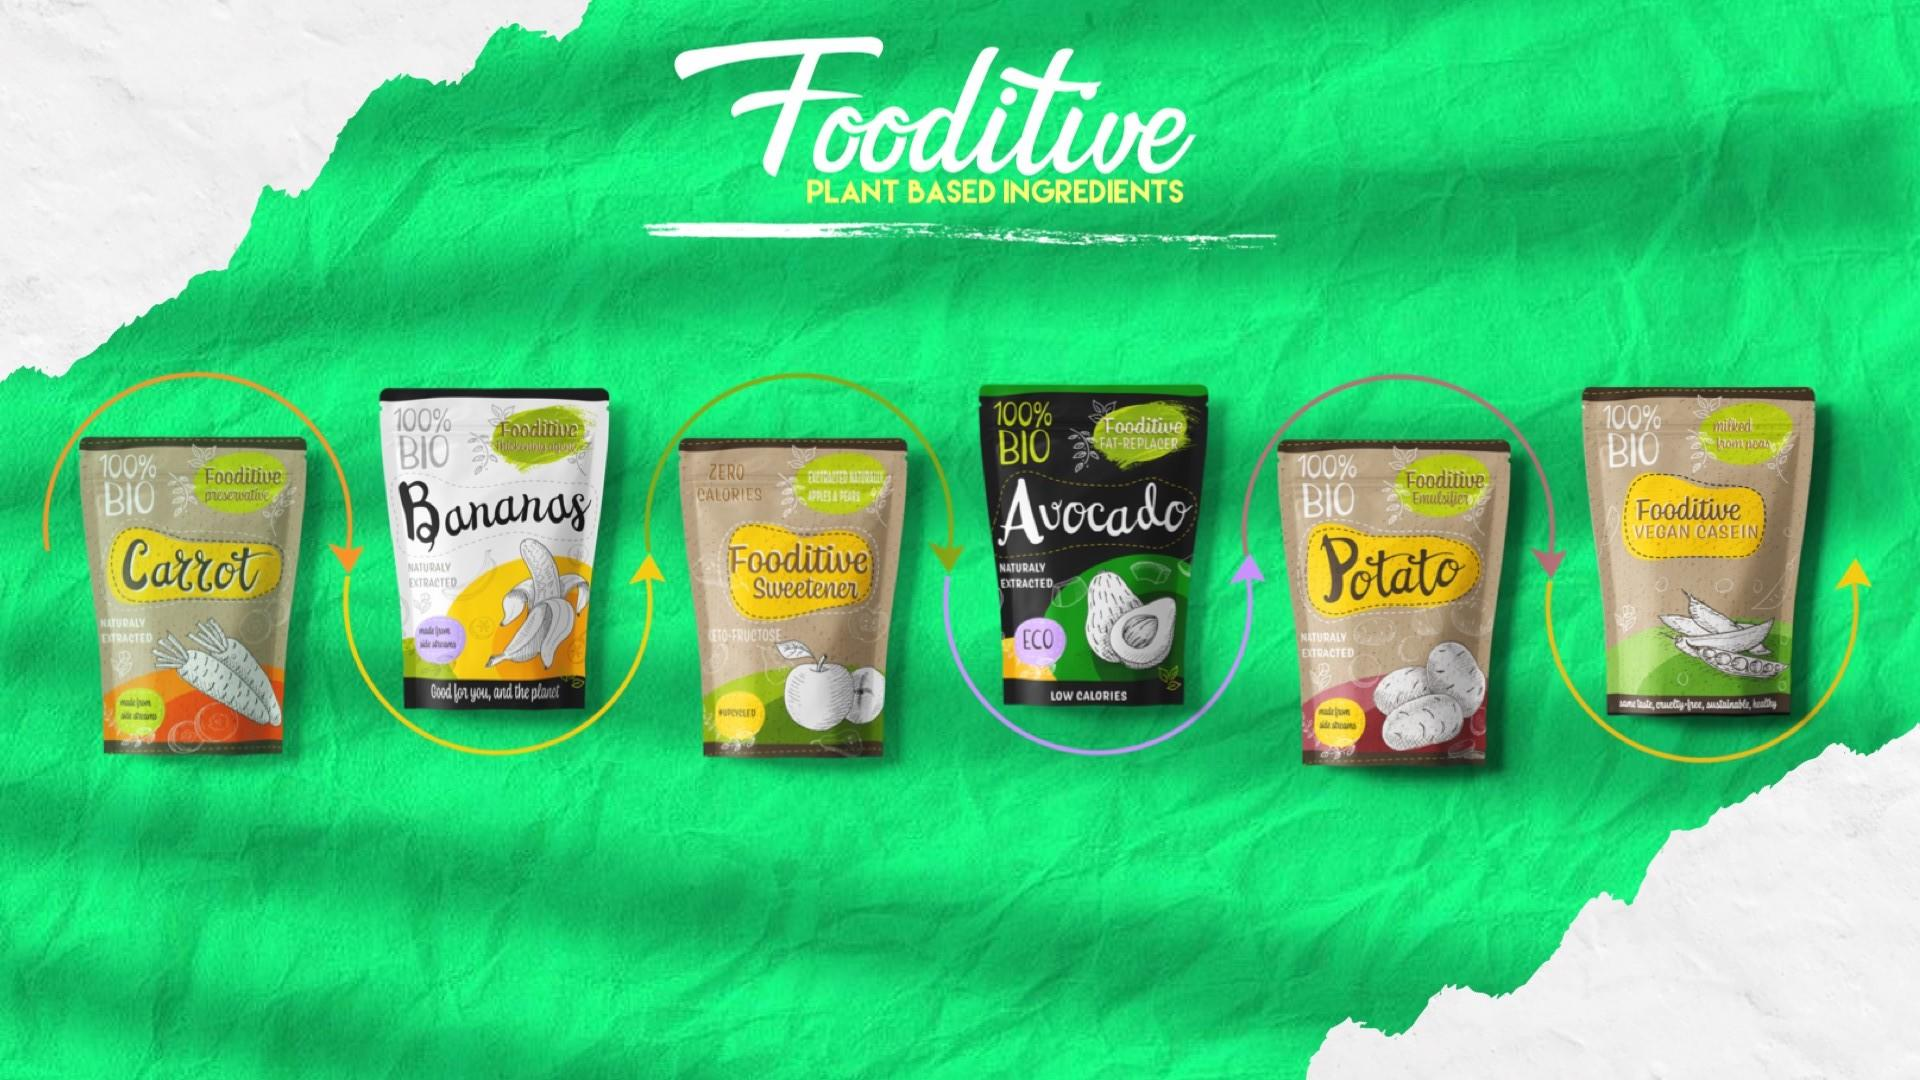 The Impact of Science to Create a Movement; the Case of Fooditive, Pioneer in Plant-Based Upcycled Ingredients